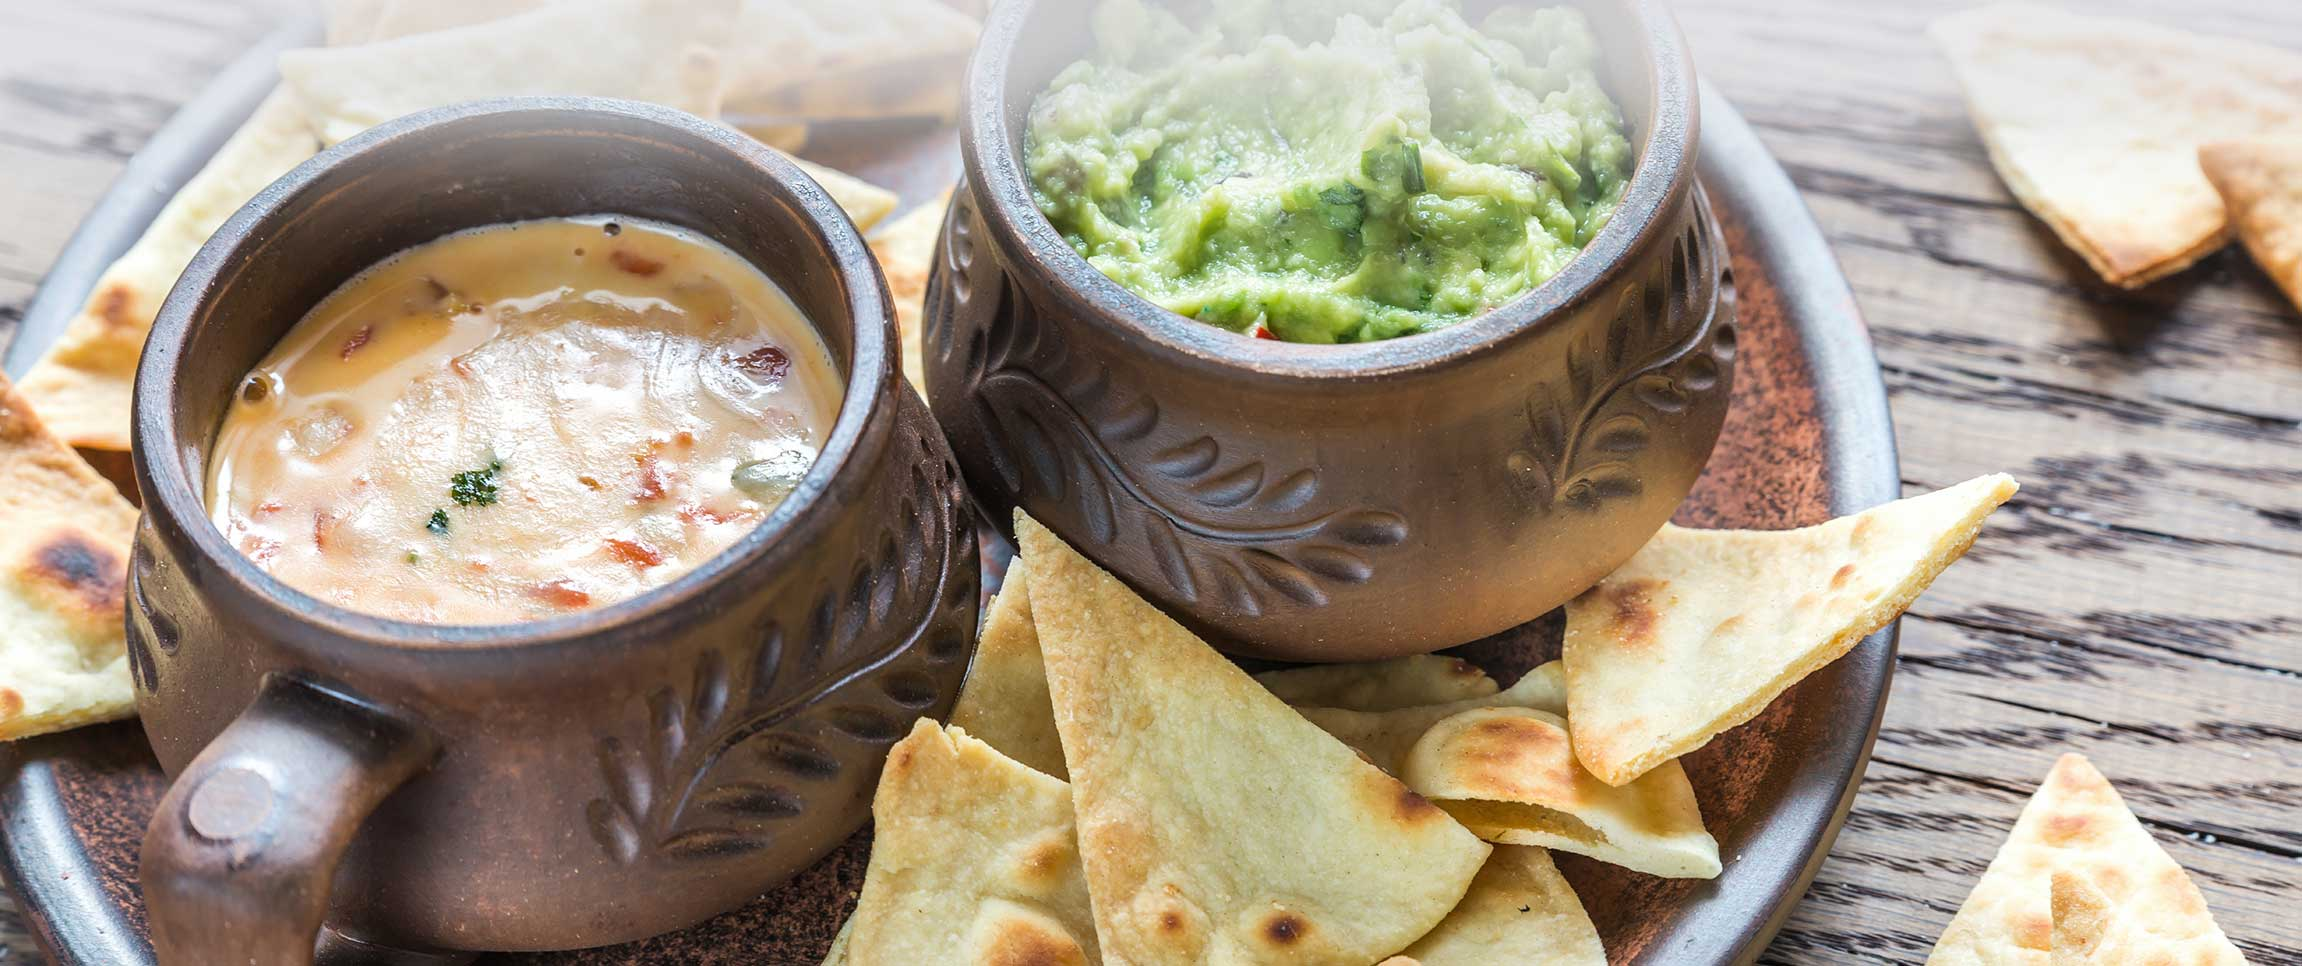 Queso Blanco Dip and Guacamole Served with Chips